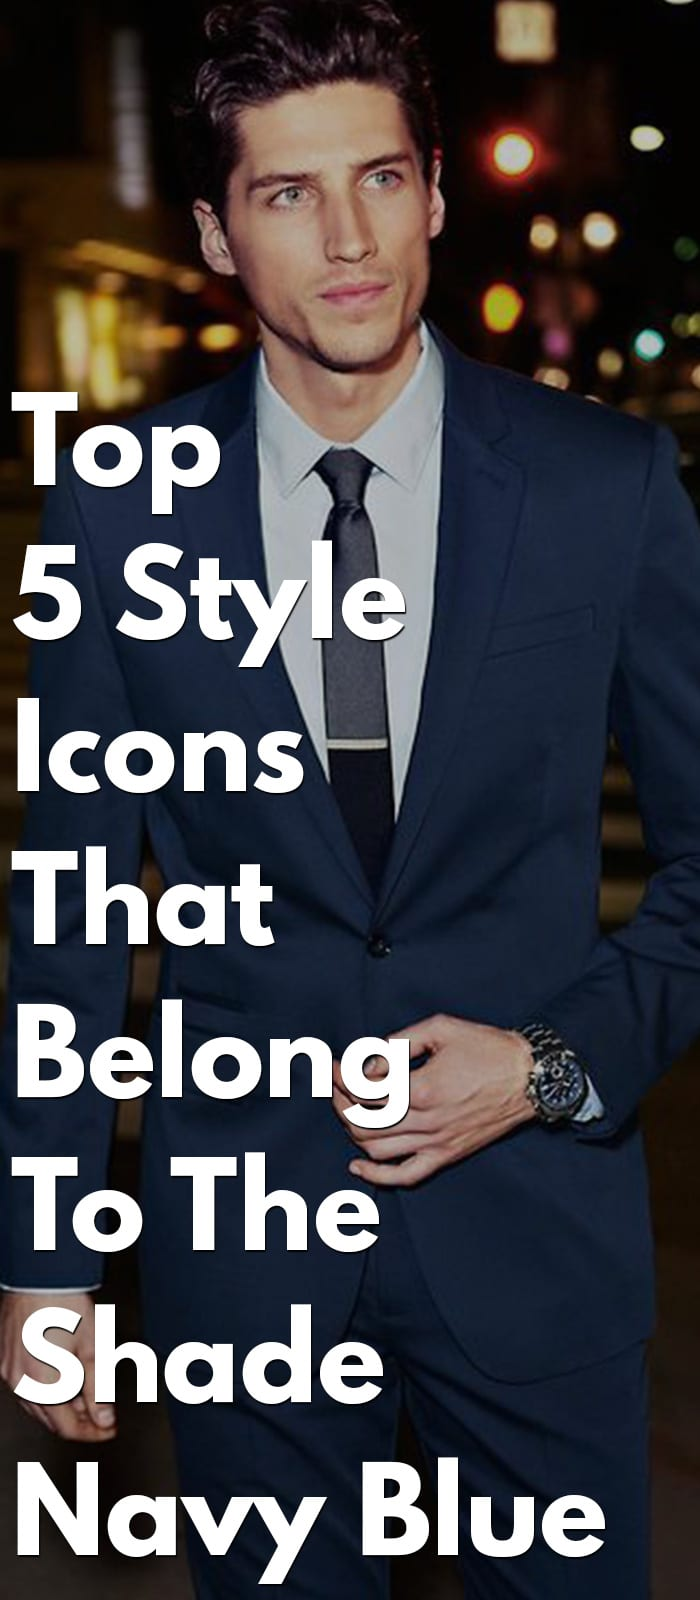 Top 5 Style Icons That Belong To The Shade Navy Blue